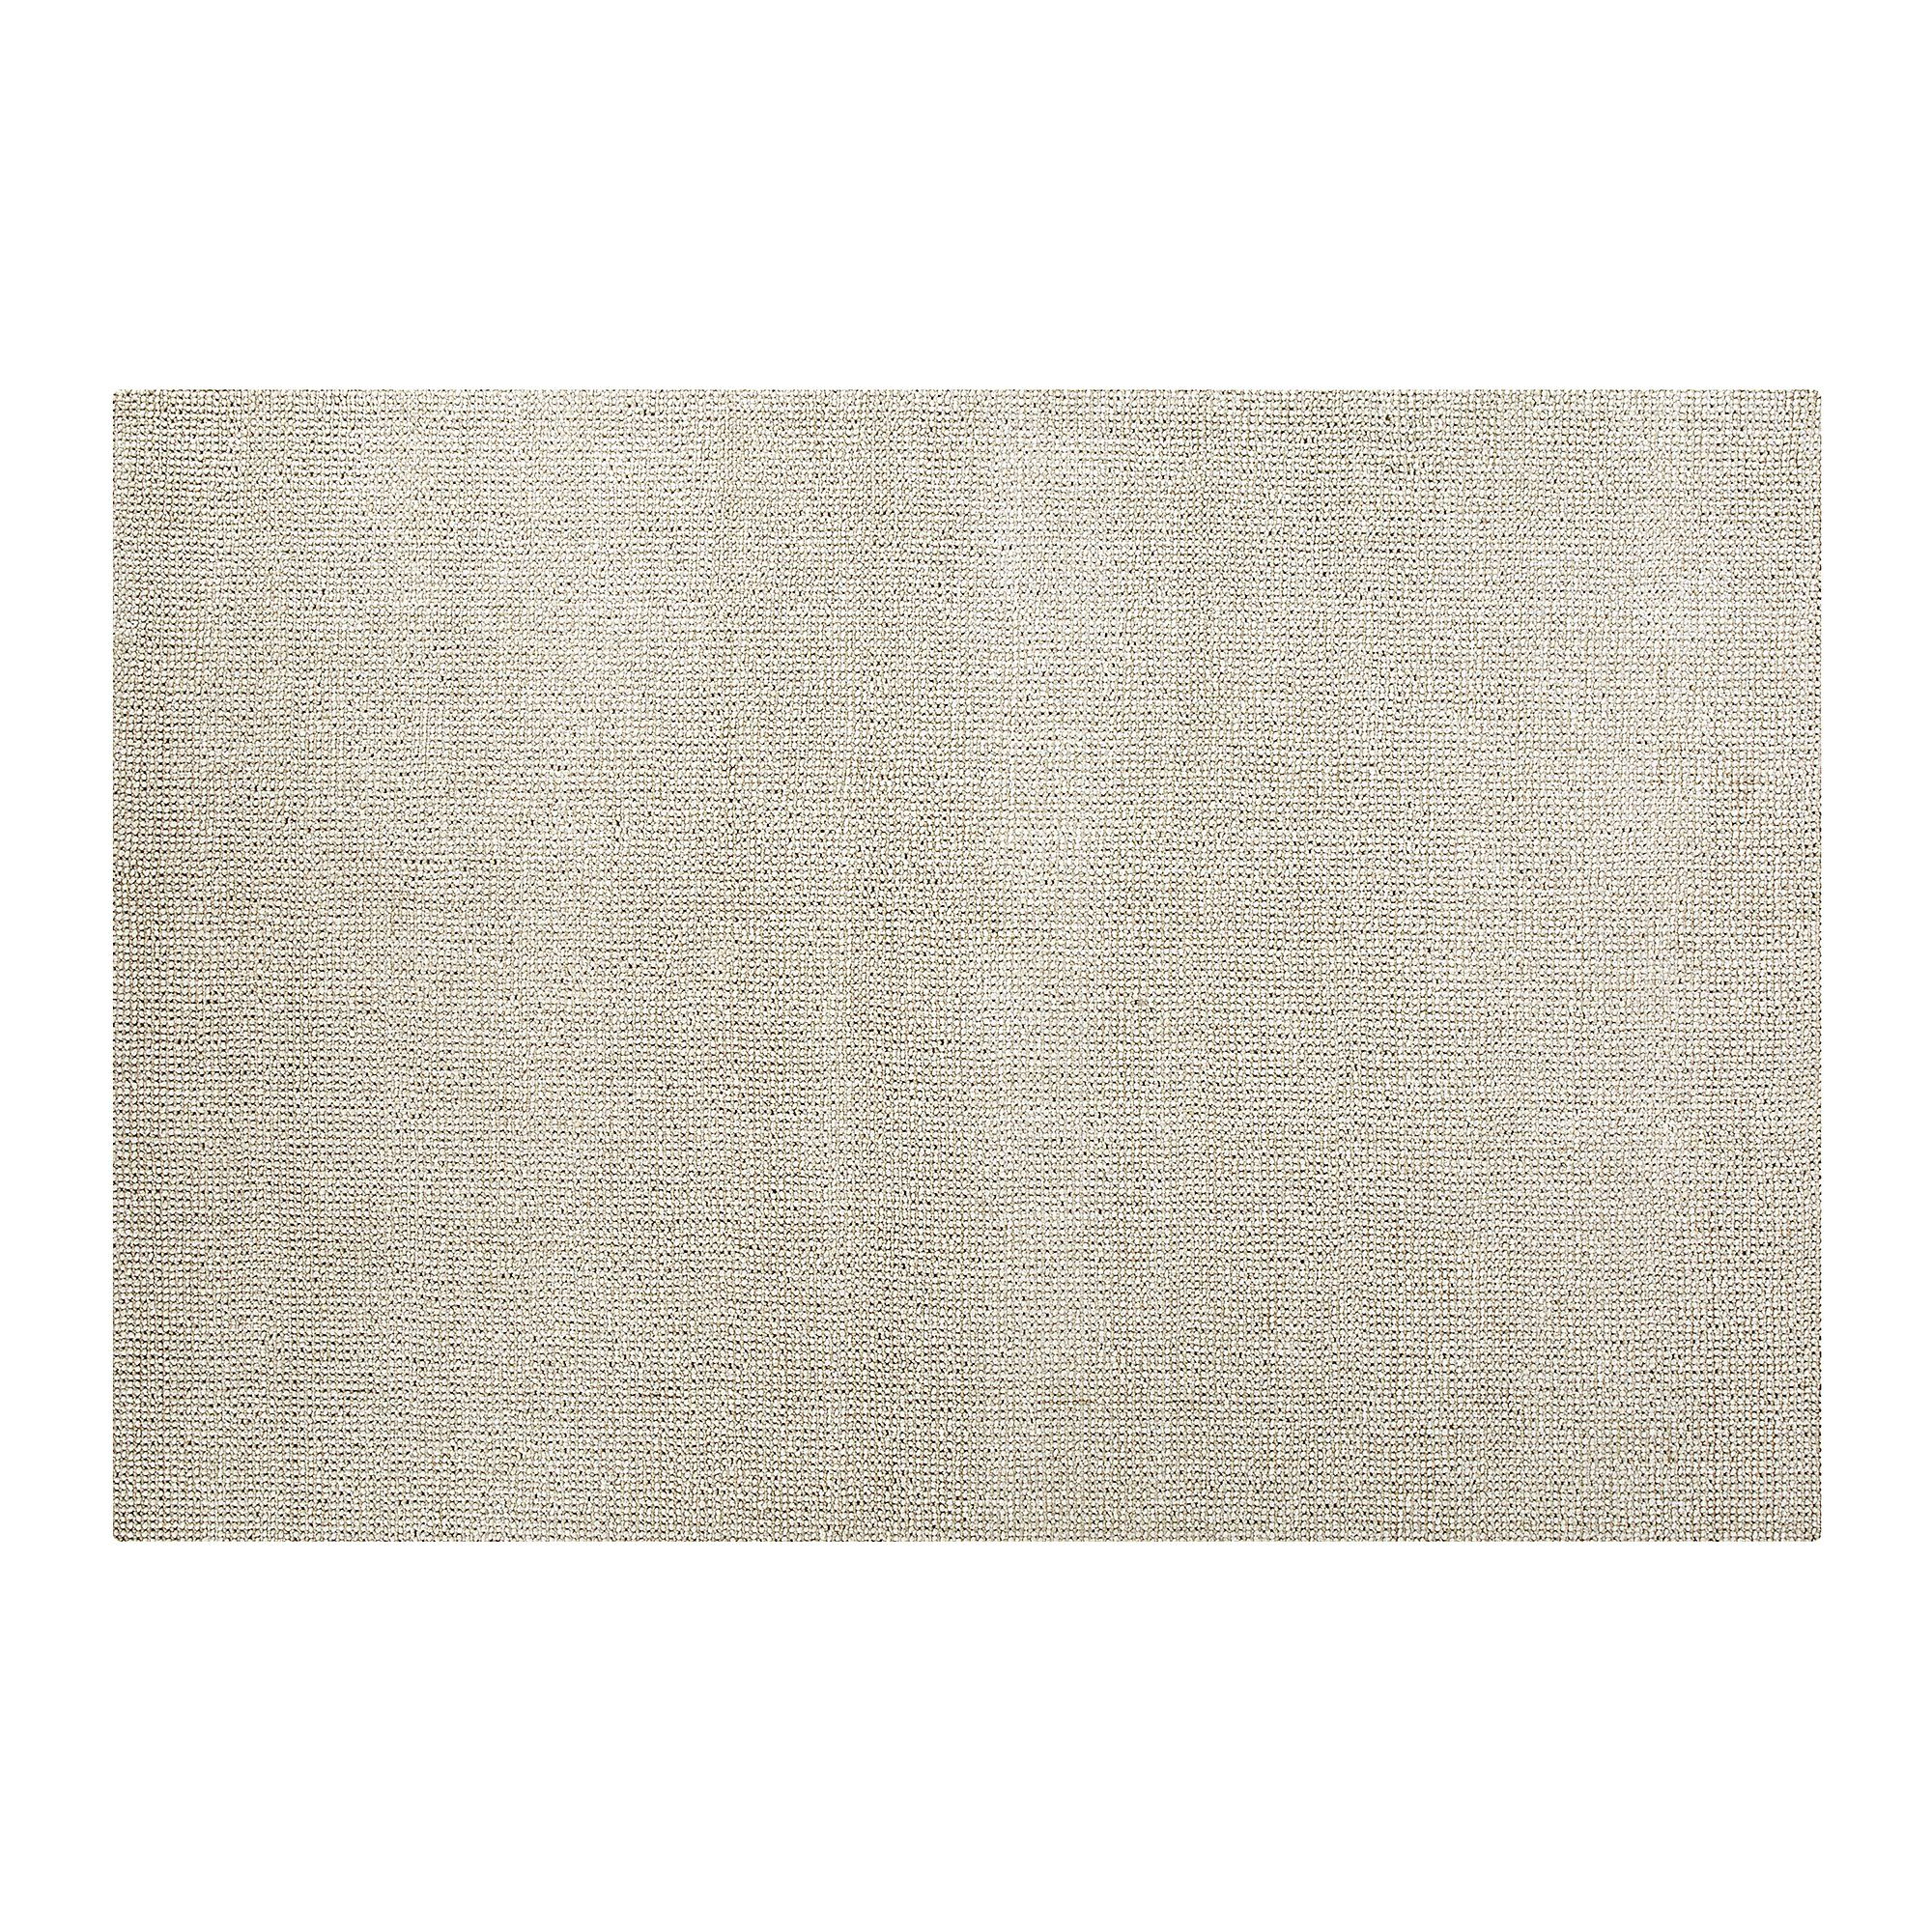 Ivory Popcorn Rug 6 X9 Crate And Barrel Rugs Crate And Barrel Area Rugs